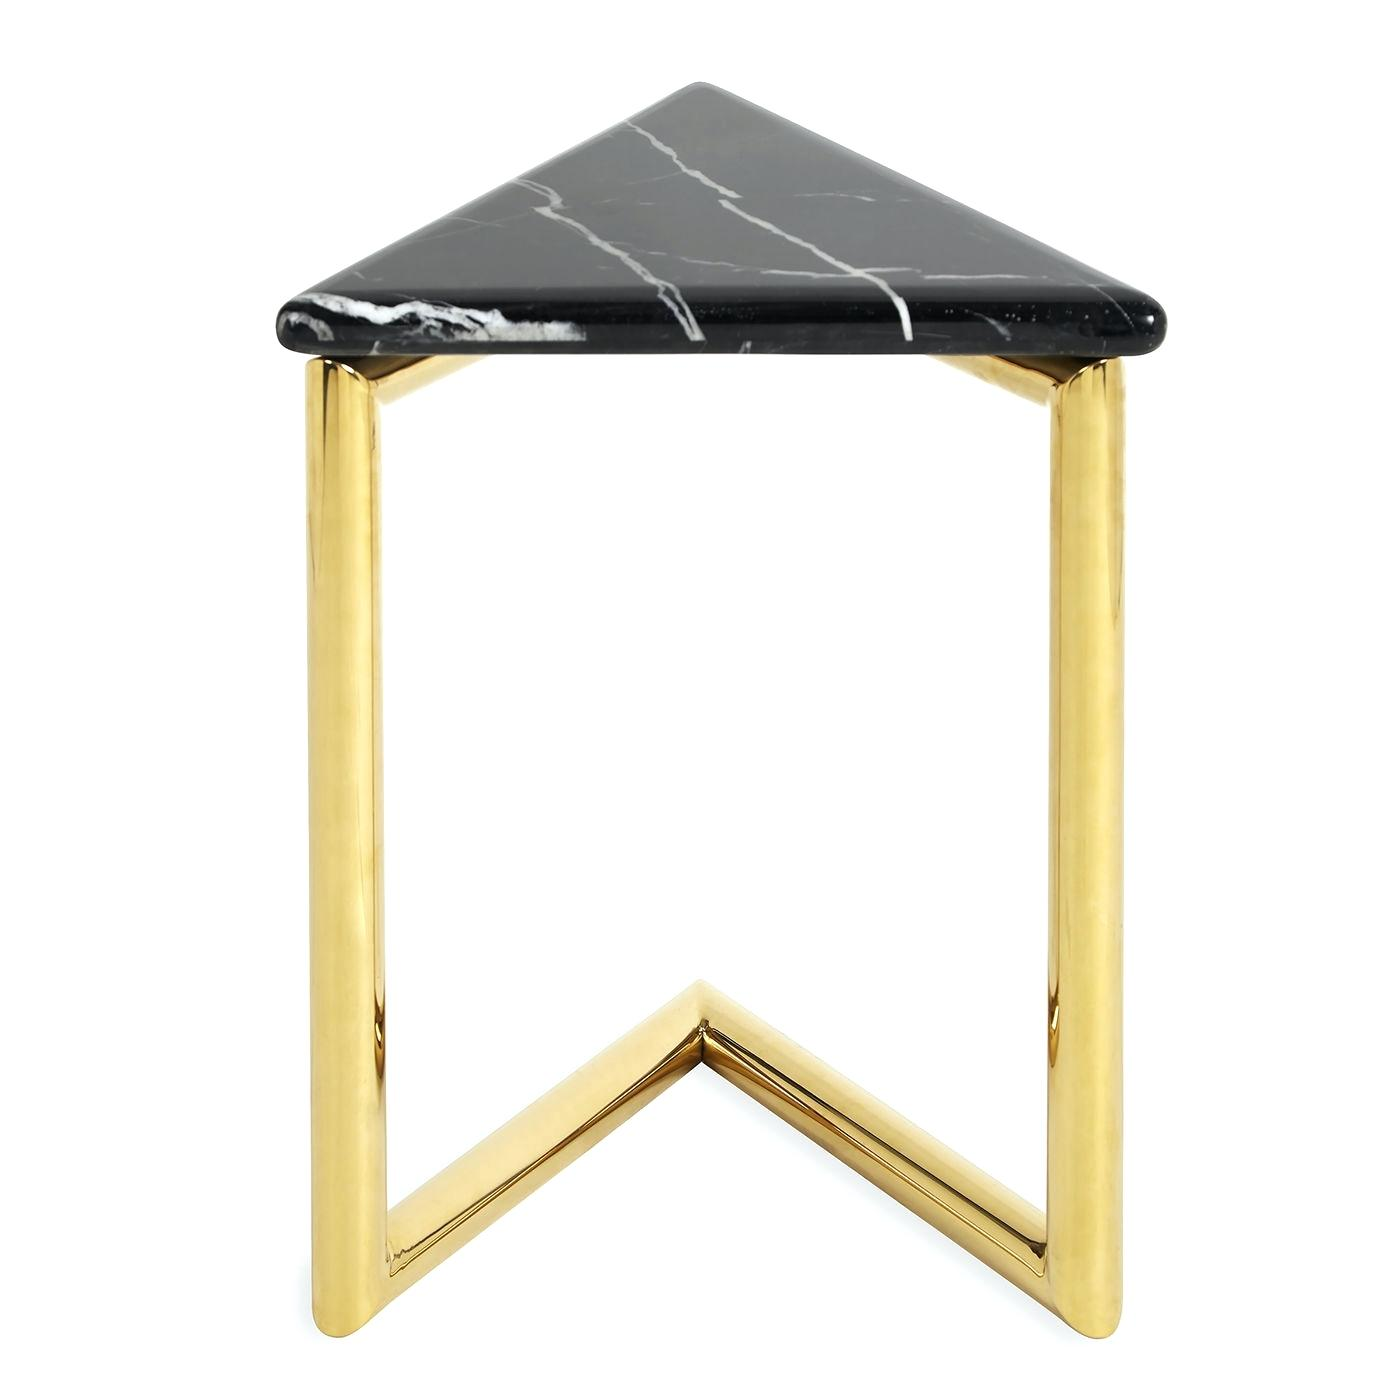 triangle accent table brilliant concrete coffee ultra alt corner dale home crystal lamp ikea vanity lights mirror dining arrangement oversized outdoor umbrellas gallerie wood